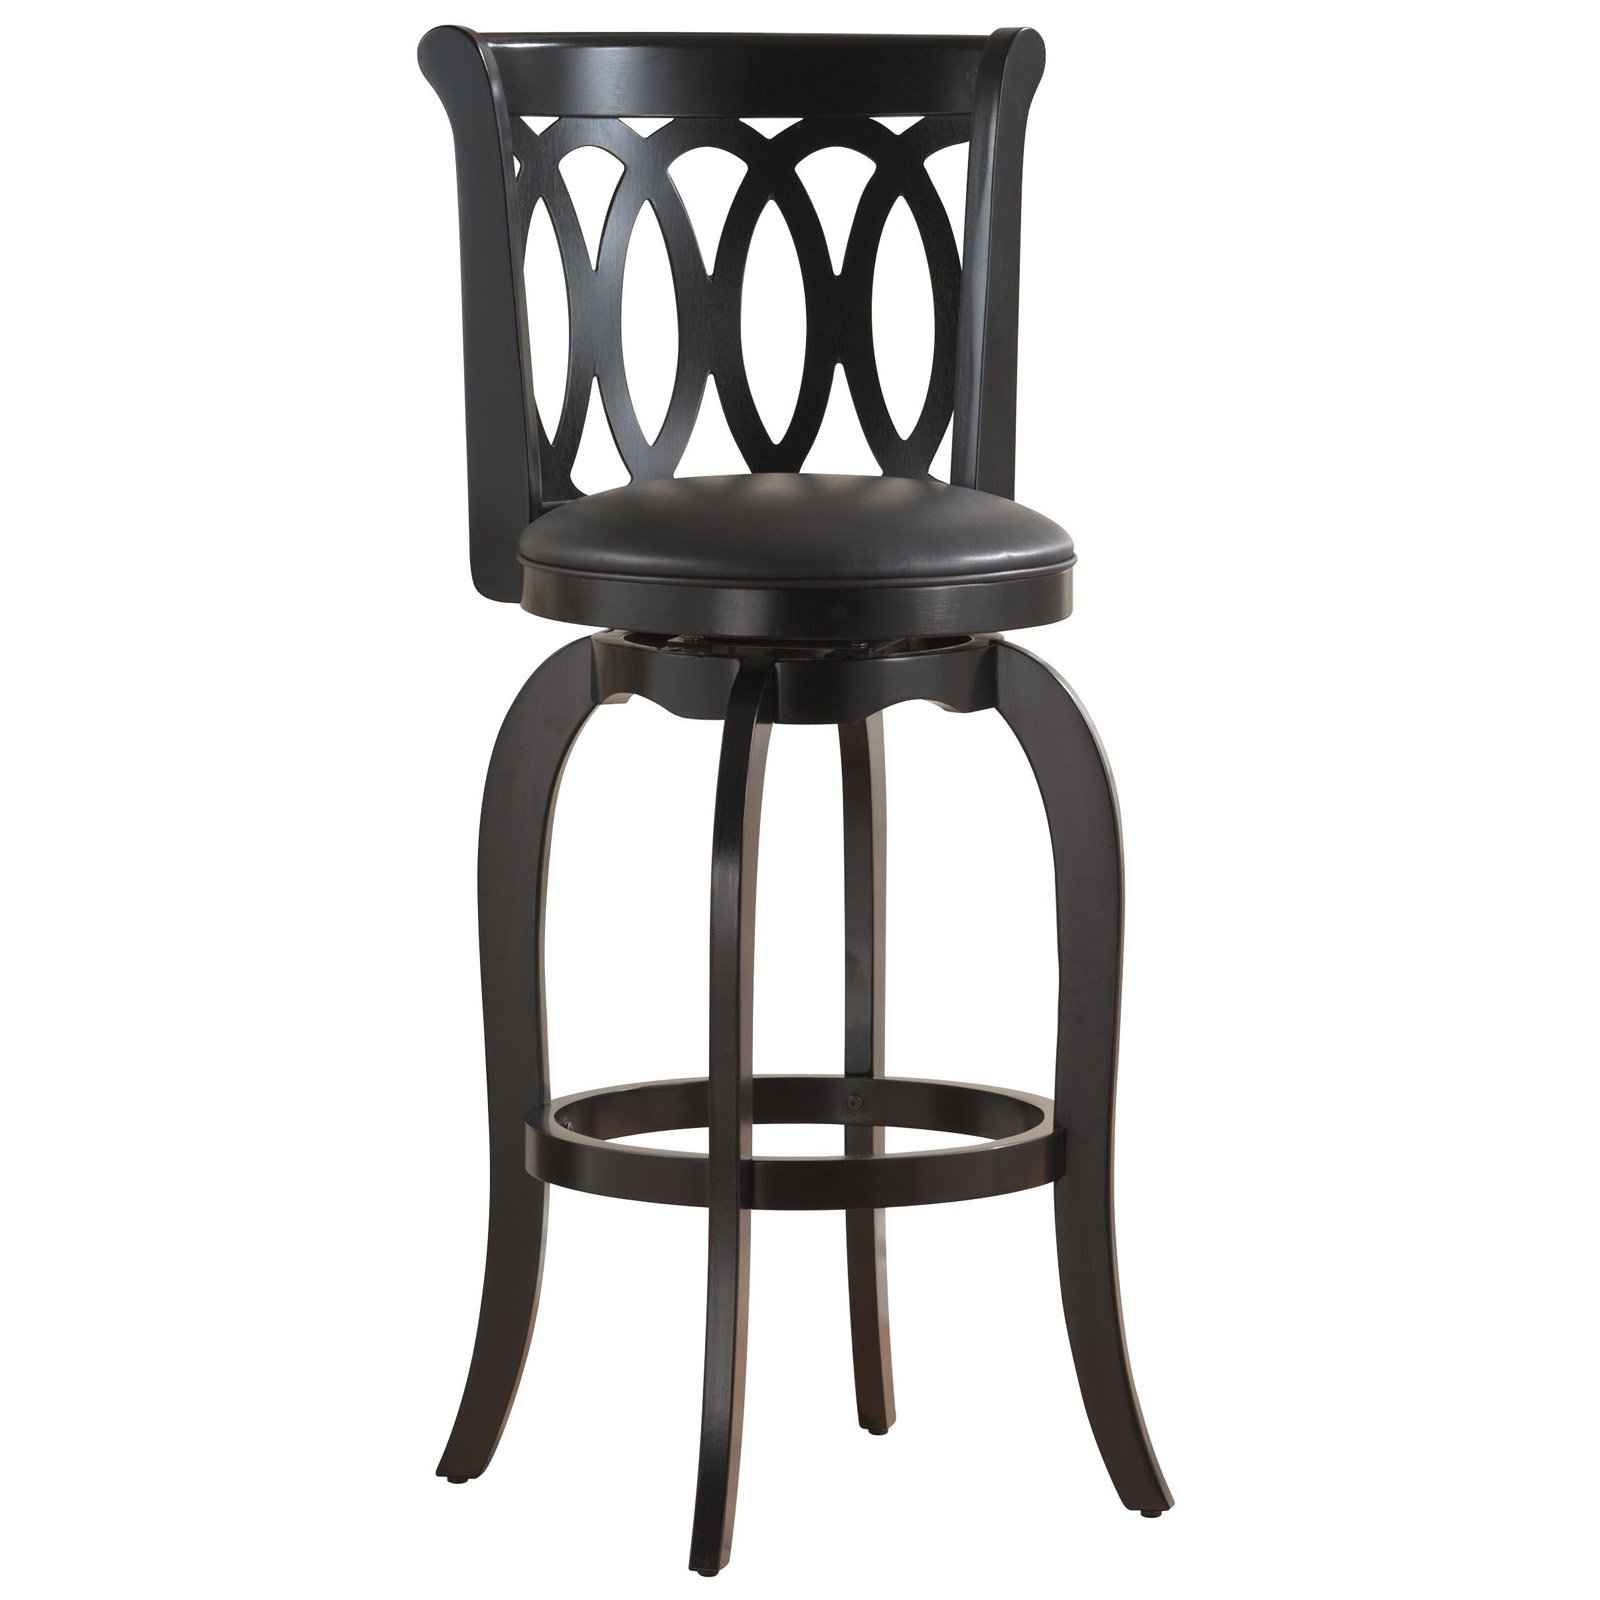 black bar stool chairs stacking sling patio cheap stools ikea feel the home